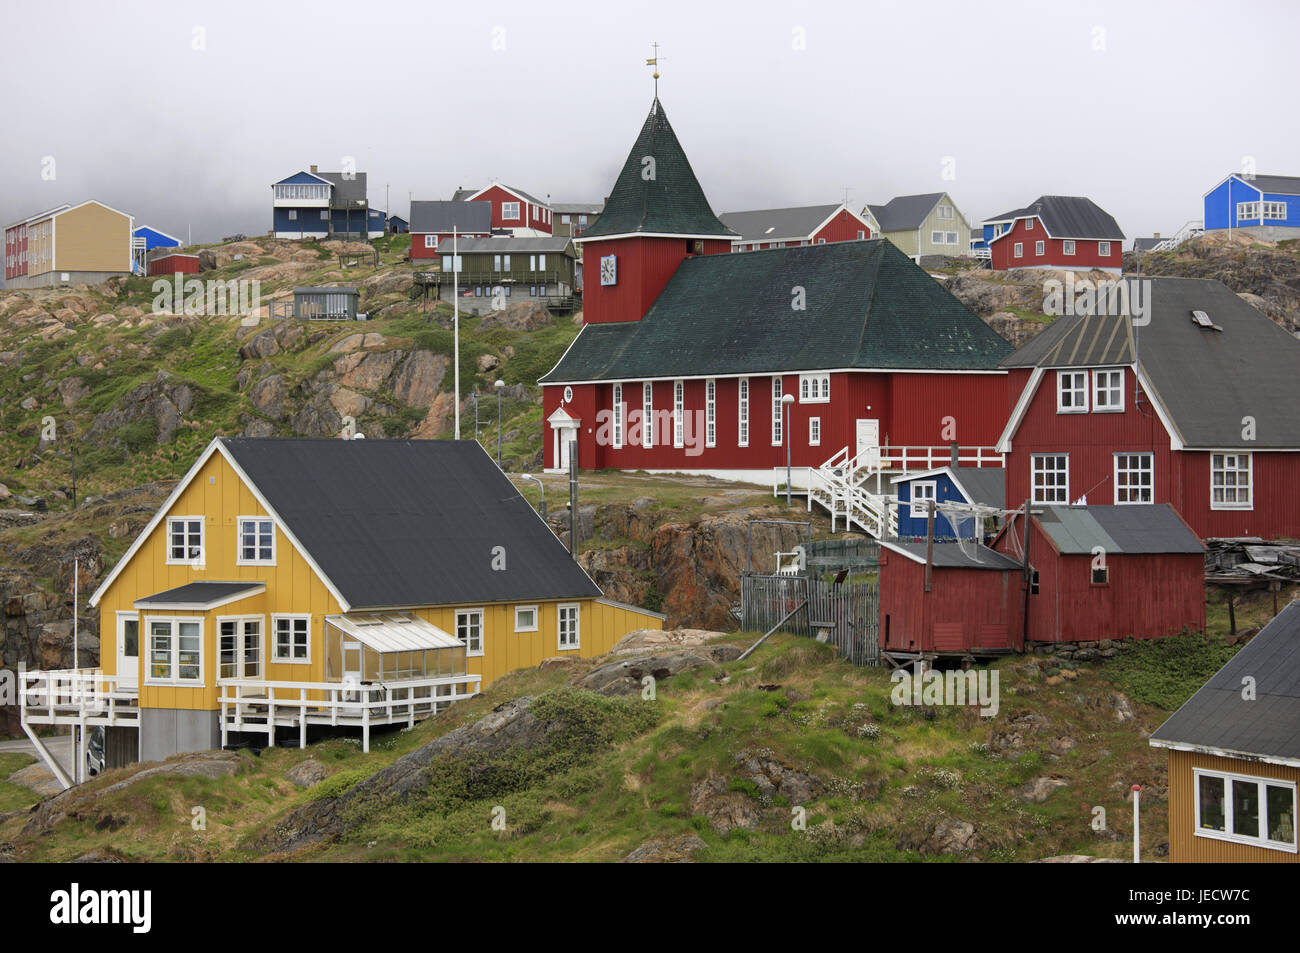 Greenland, Sisimiut, town view, houses, church, Western Greenland, town, destination, place of interest, outside, Stock Photo